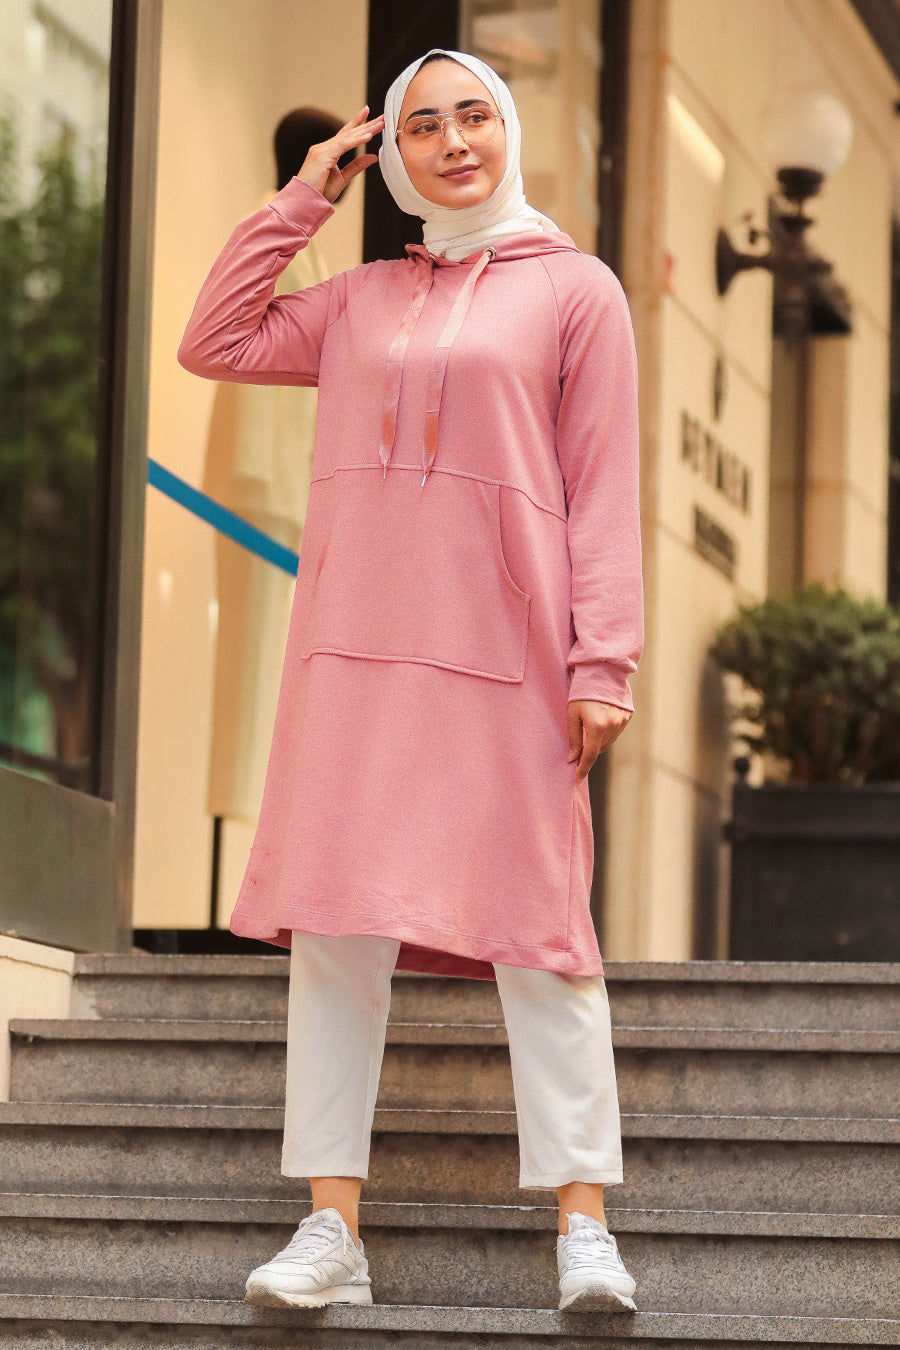 Women's Pocket Dusty Rose Modest Sweatshirt / Tunic